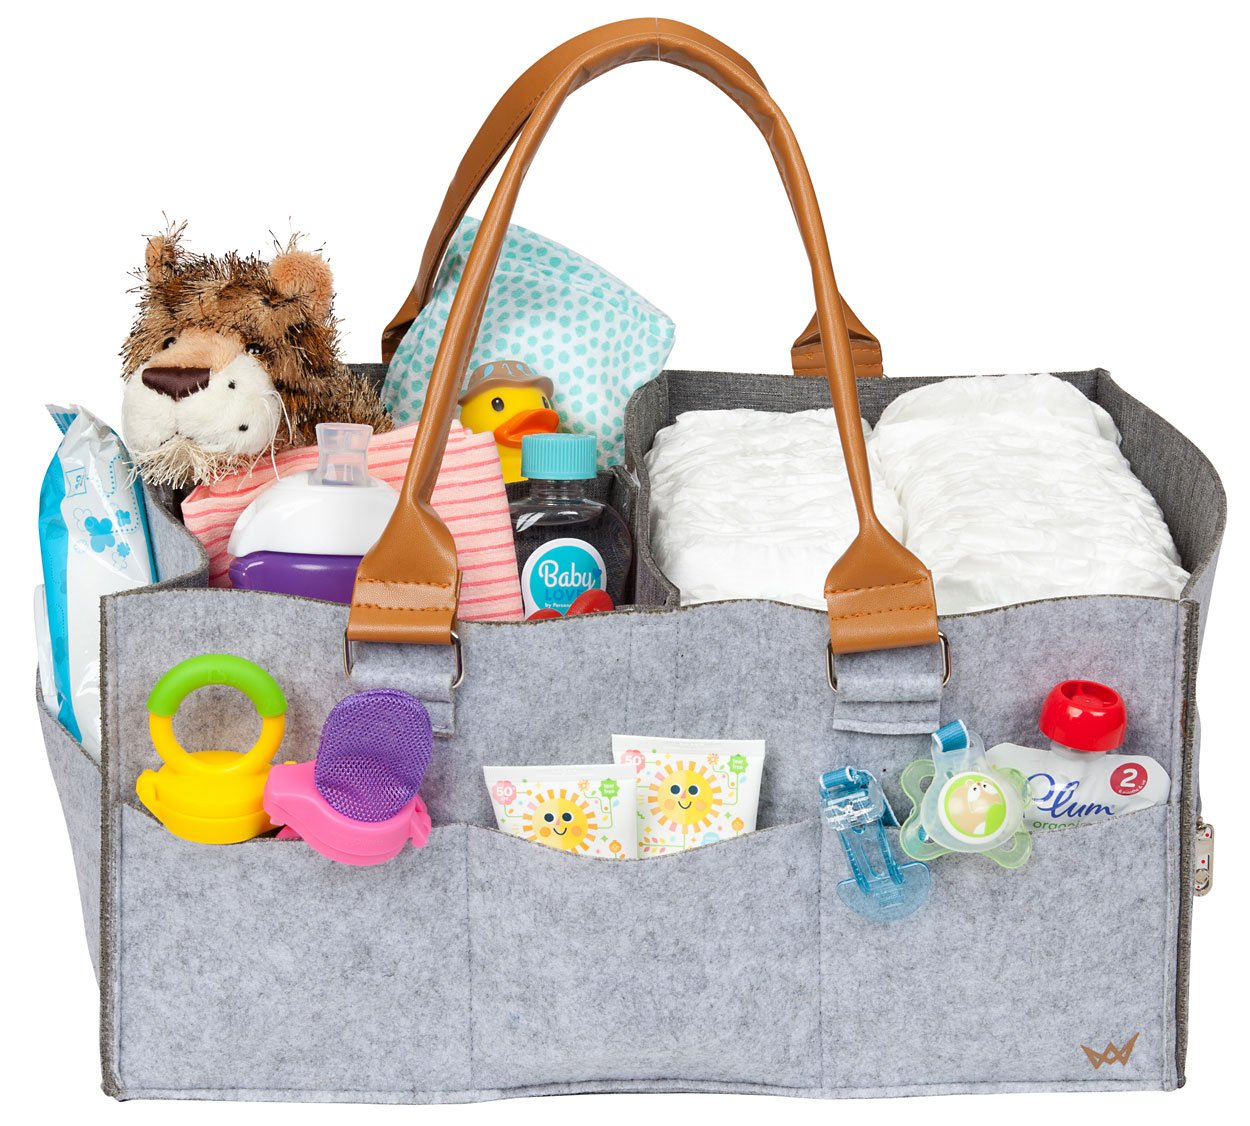 "Baby Diaper Caddy Organizer Extra Large 17"" x 11"" x 8"" Water Resistant Lining 2 Large Zipper Pockets for Valuable Items Baby Shower Gift Basket Newborn Registry Must Haves AVC Empire"